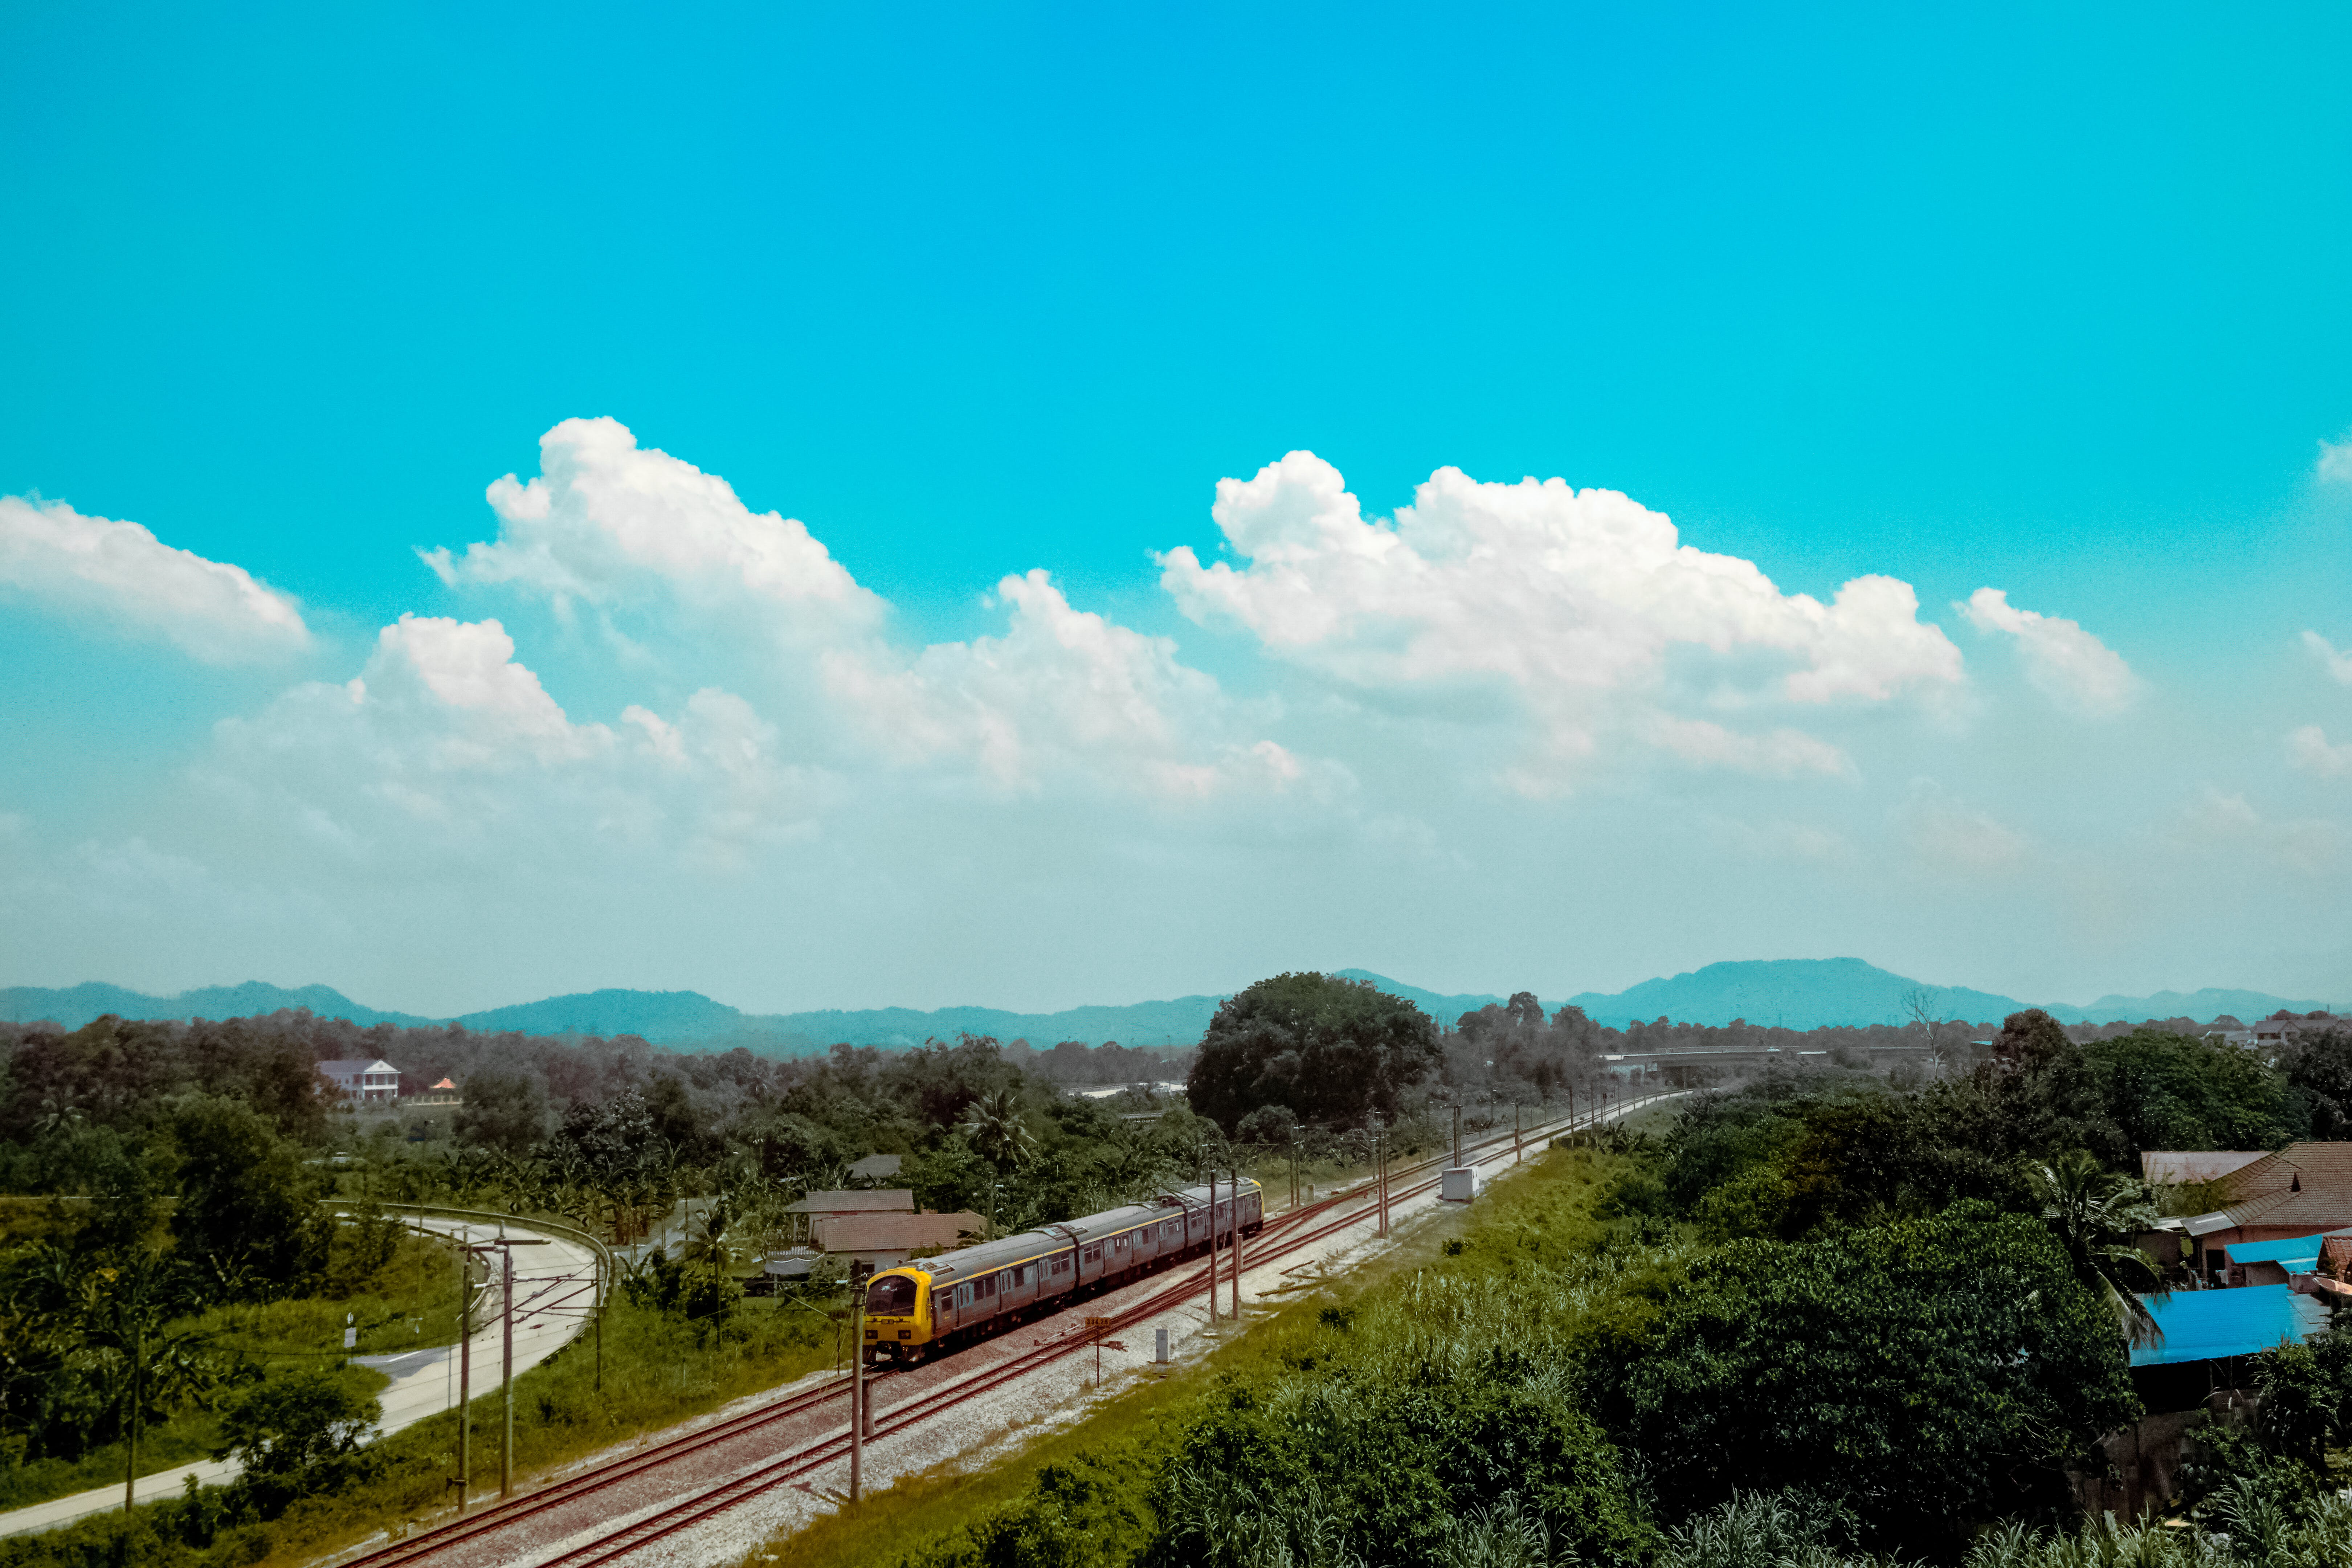 Bird's Eye View of Train Passing by Trees